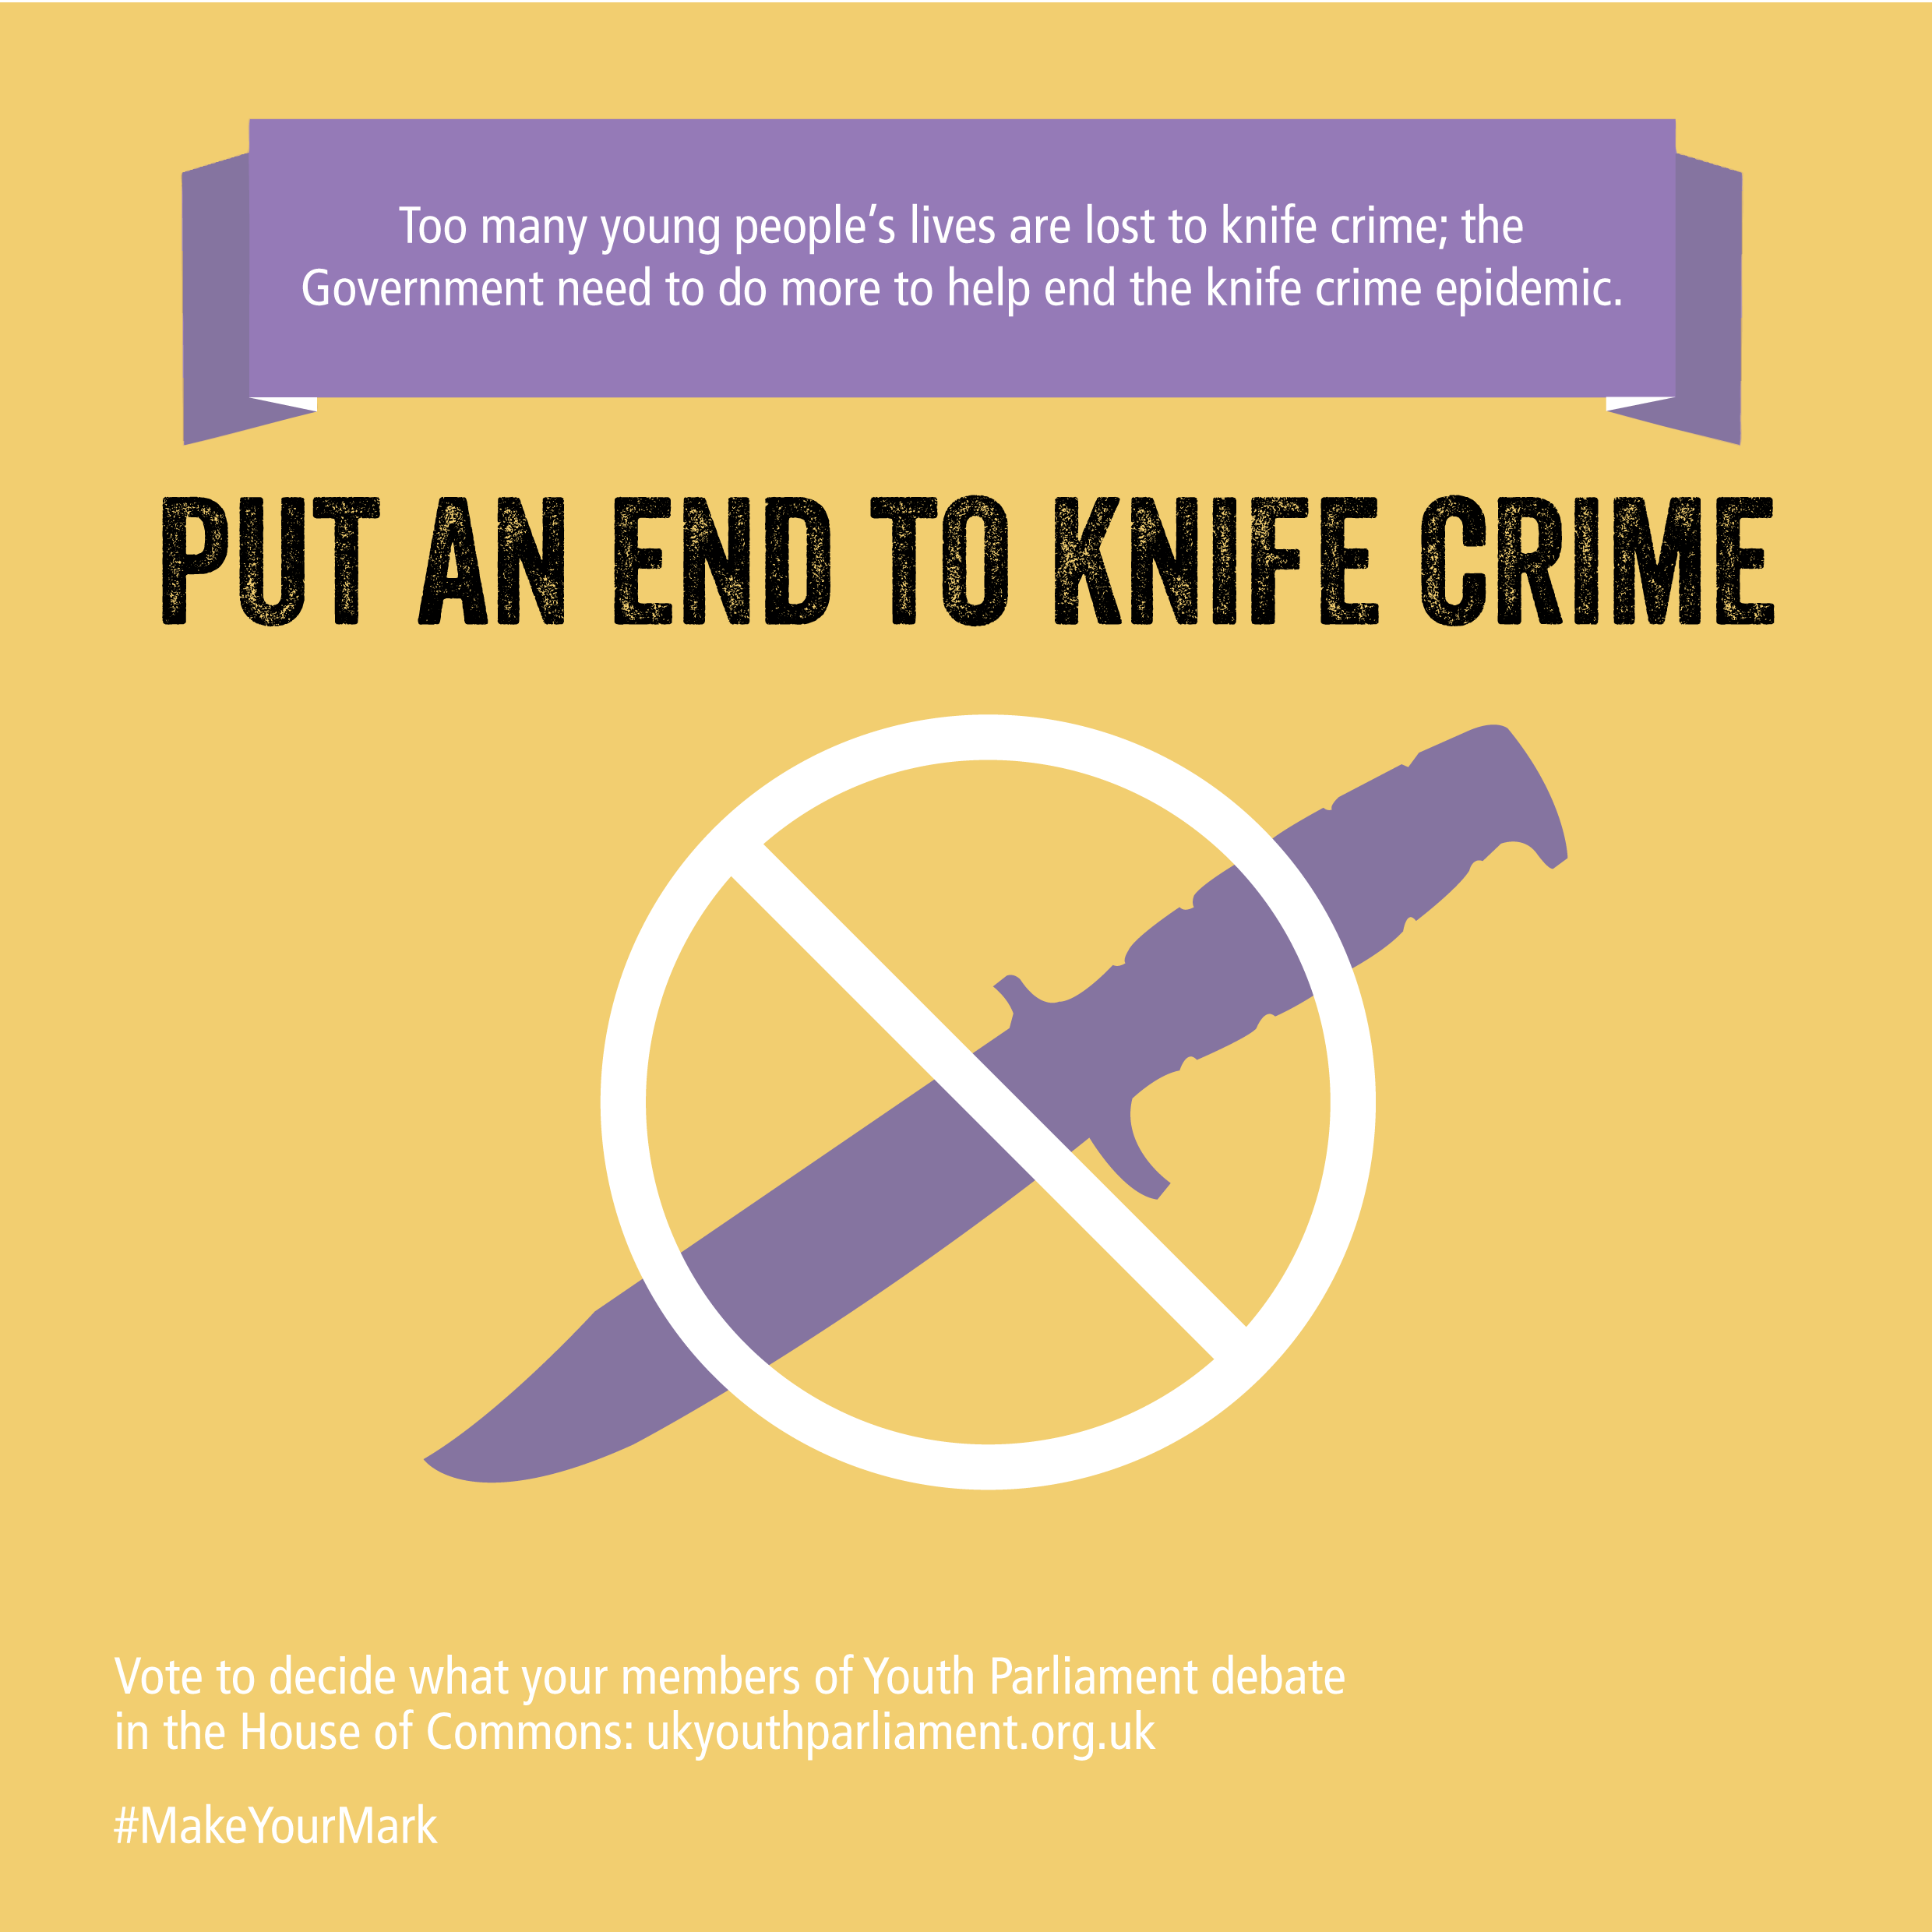 4. Put An End To Knife Crime